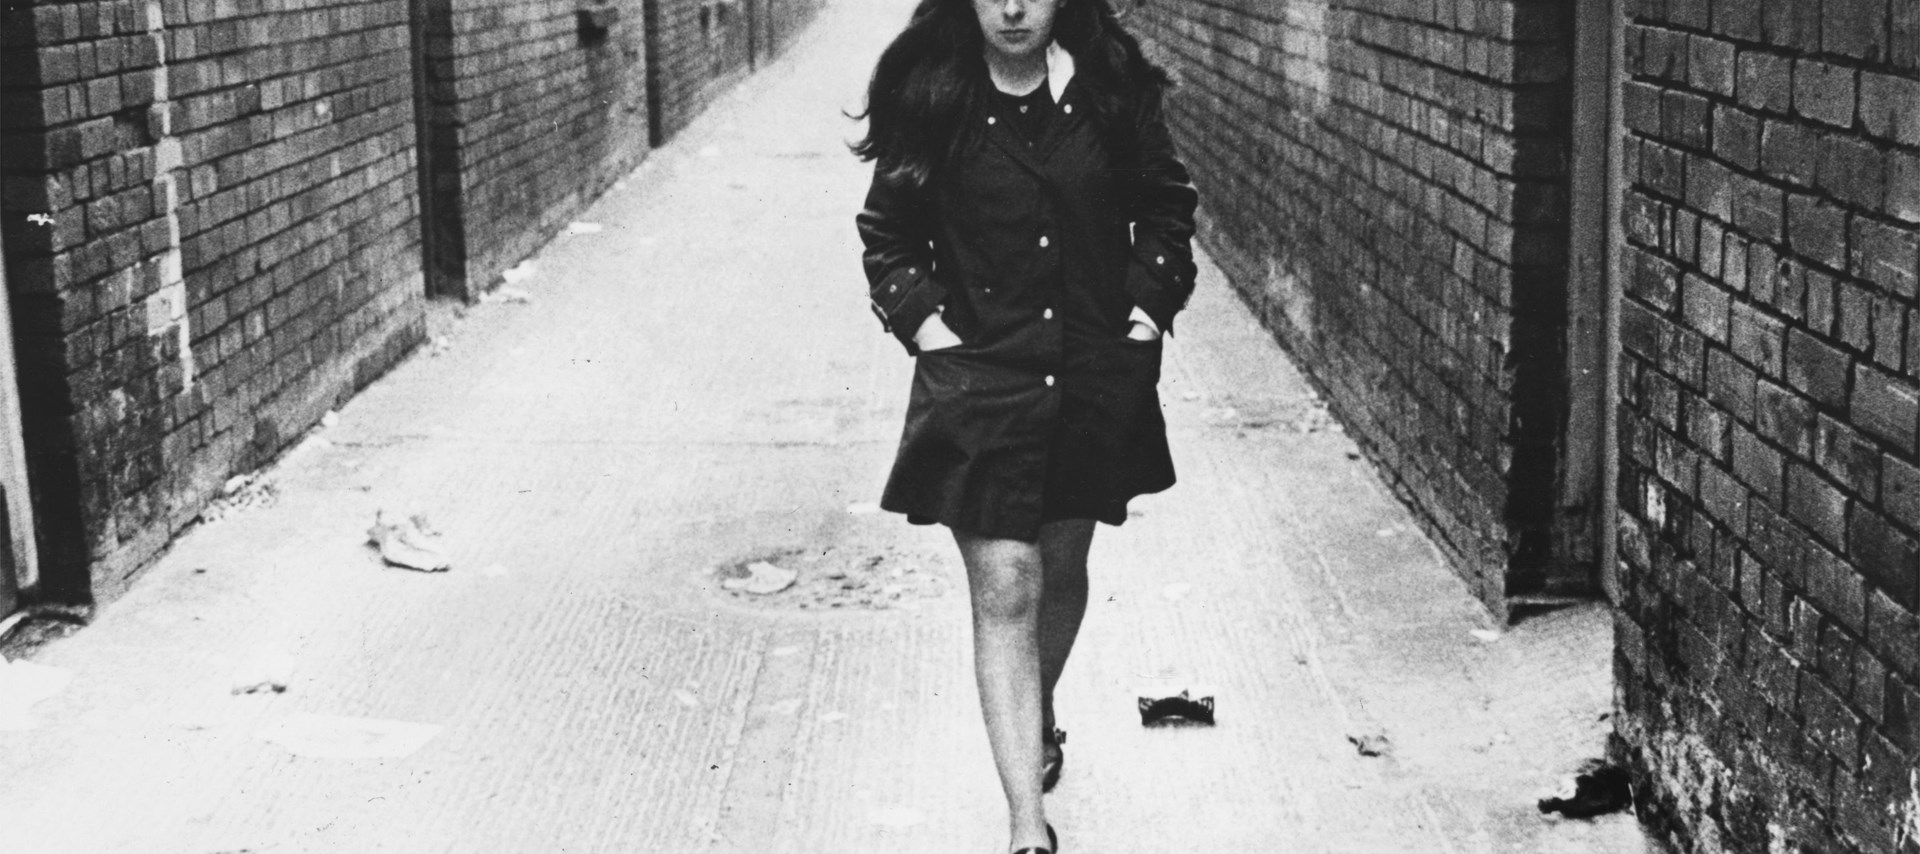 Collection: Hulton Archive Photographer: Central Press Courtesy of Getty Images   Image of Bernadette Devlin Black and white still image used in Bernadette a film by Duncan Campbell